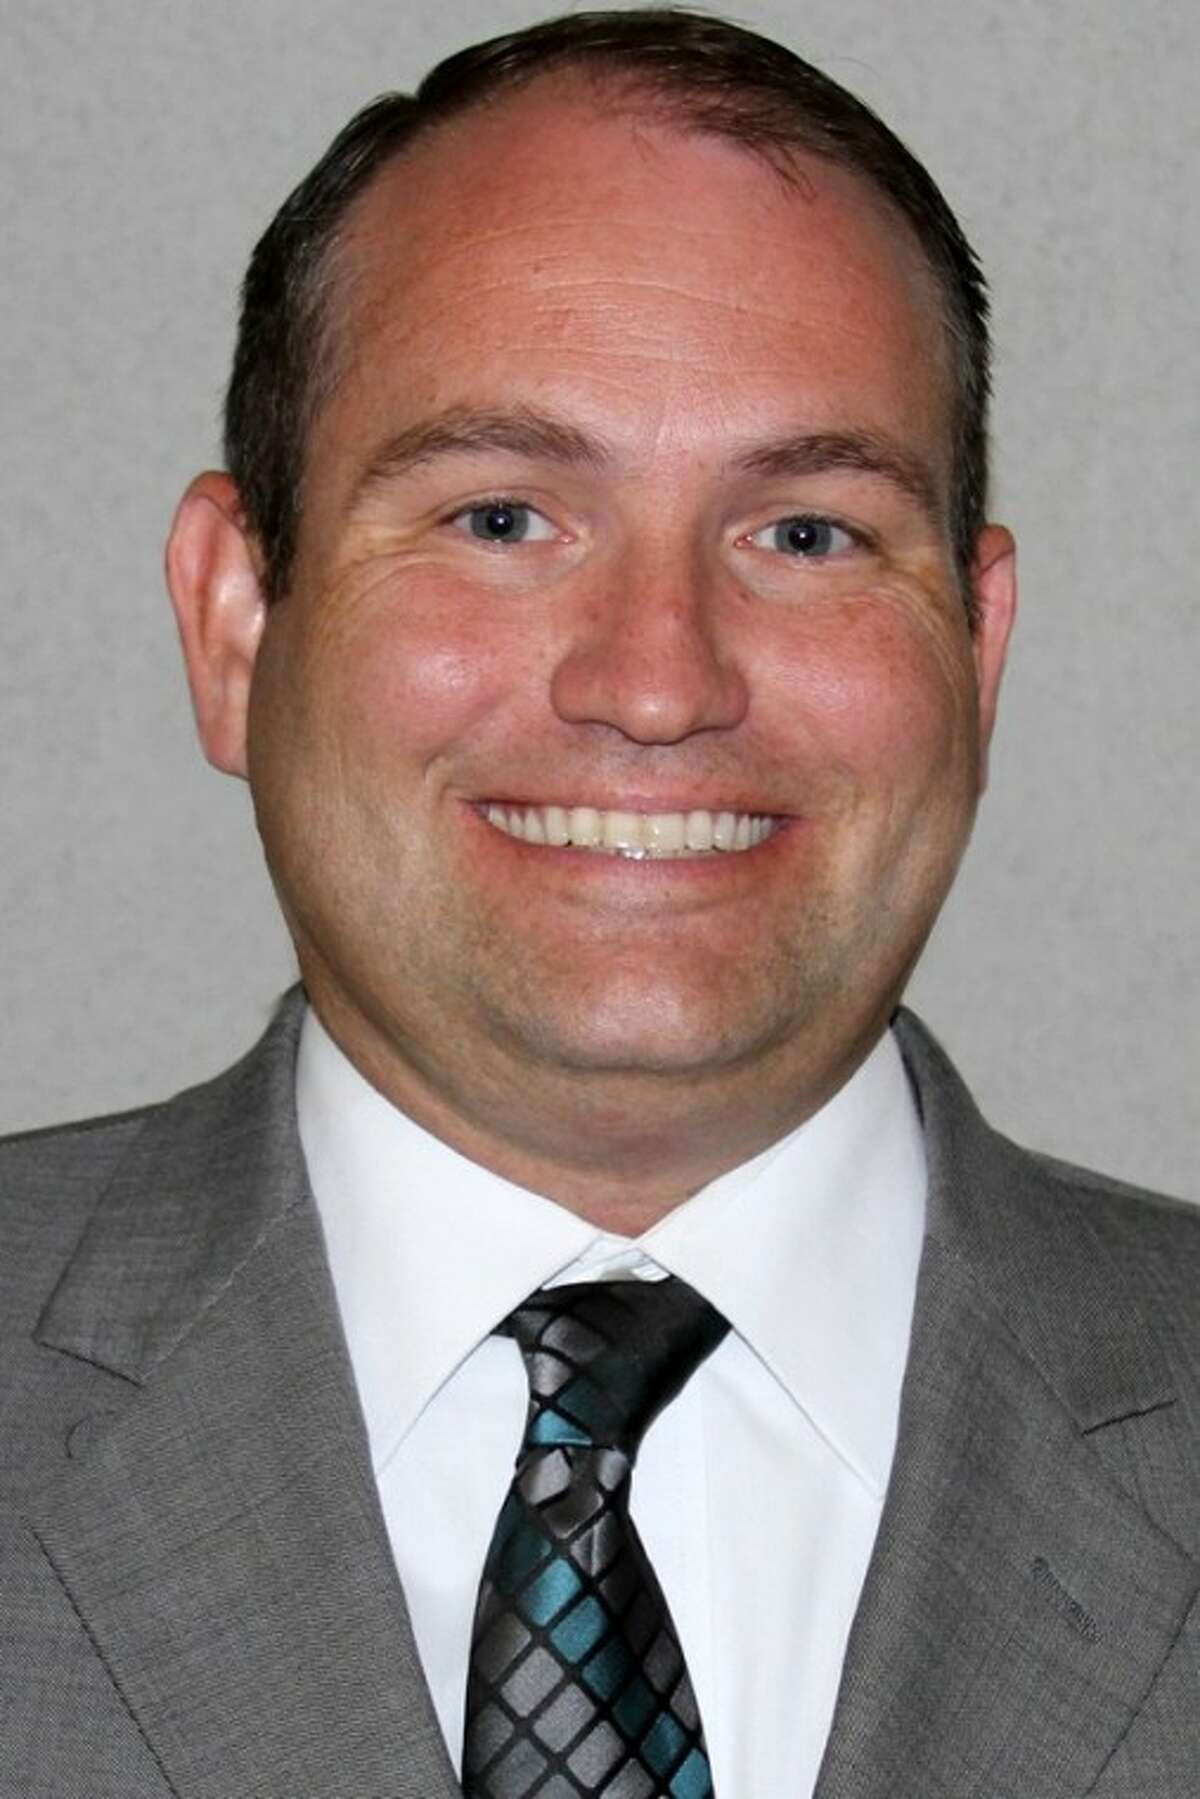 Scott Pollack, the new principal at Milstead Middle School